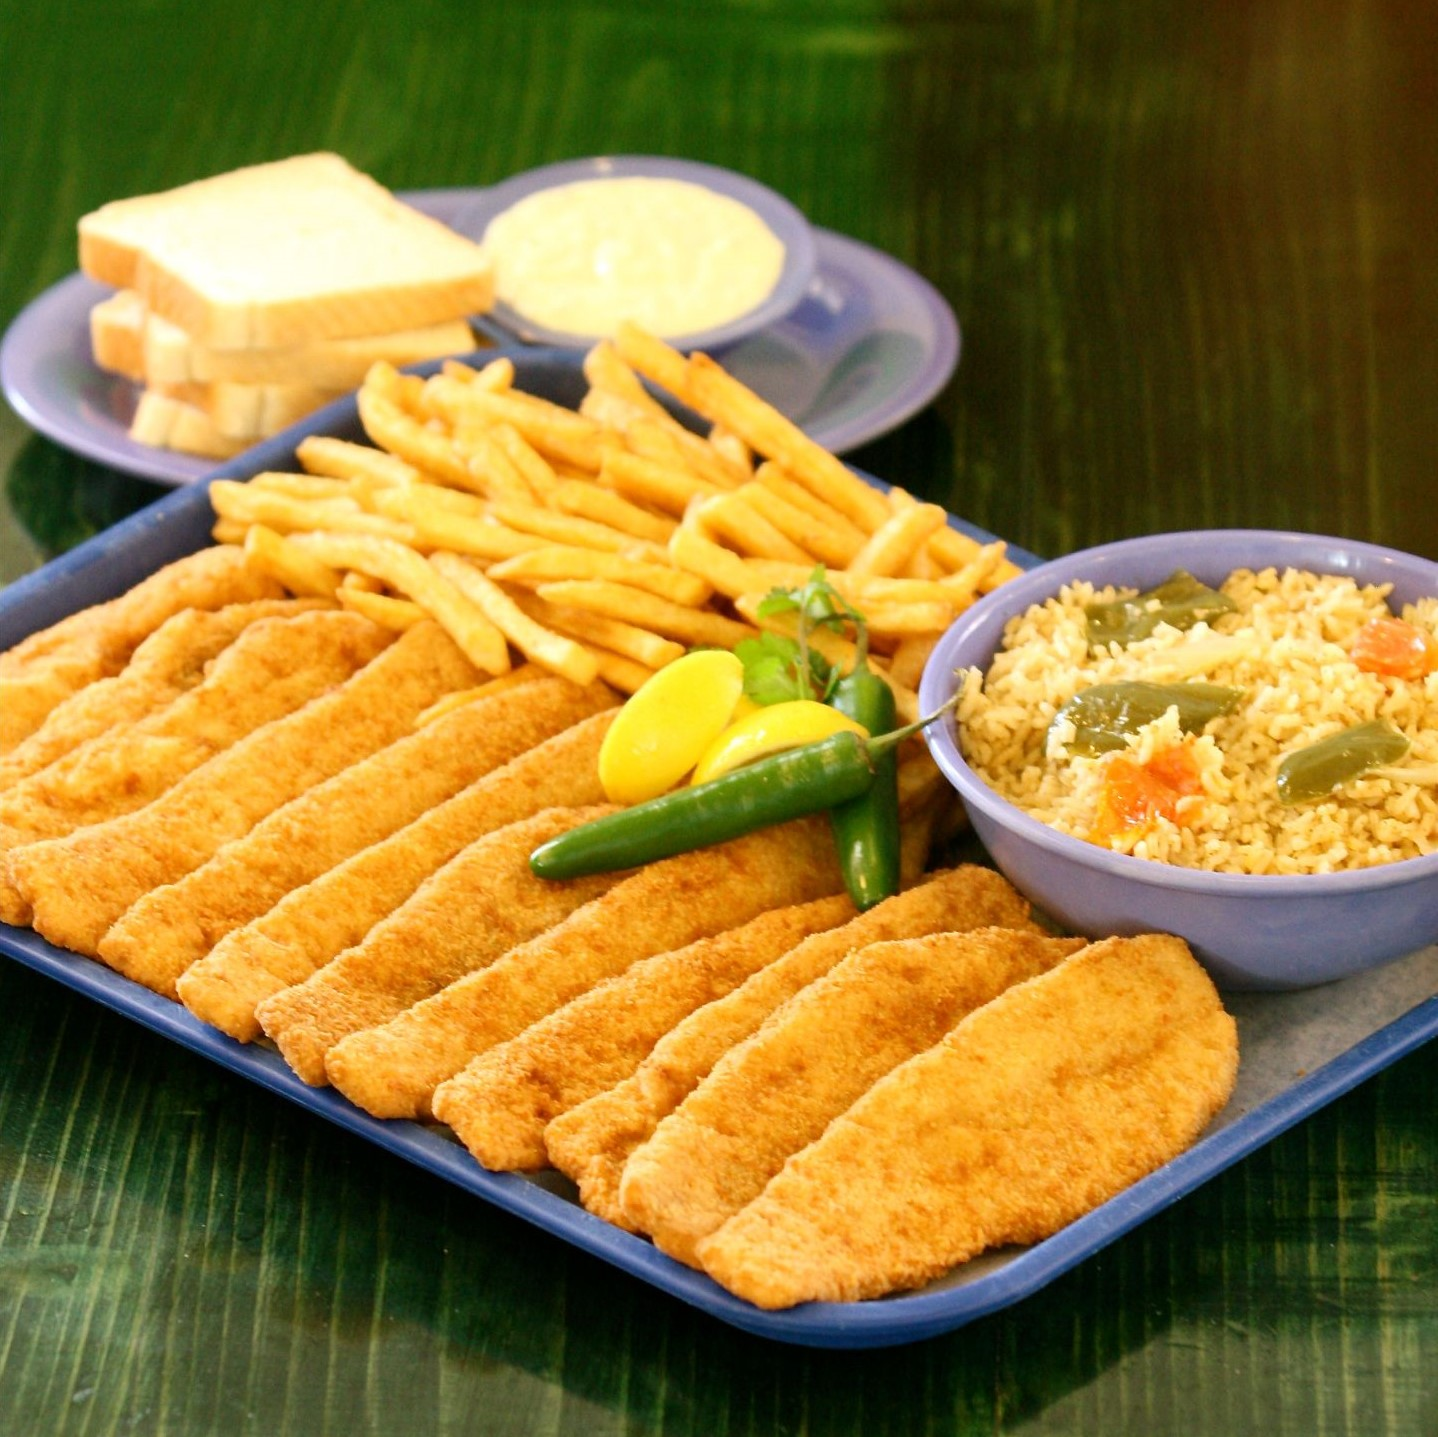 Fried fish sticks on a tray with French fries, hot peppers and a bowl of spicy rice